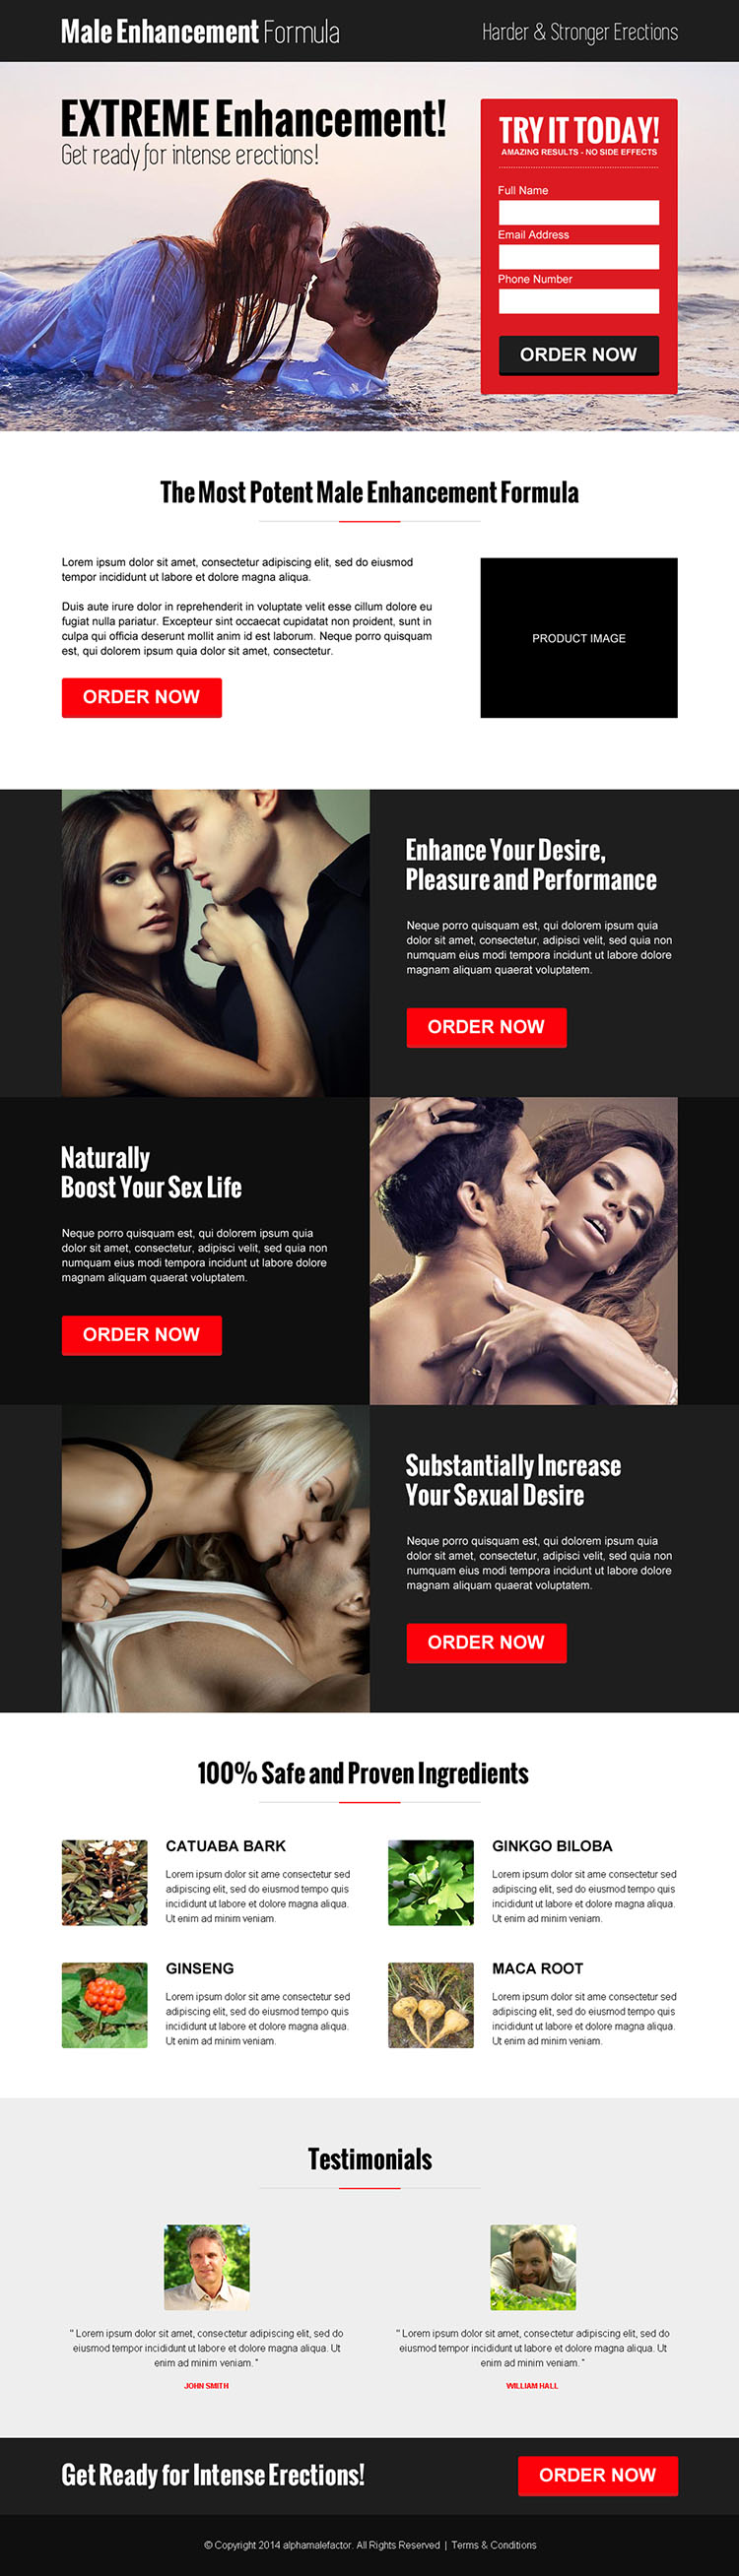 converting male enhancement formula modern and converting landing page design